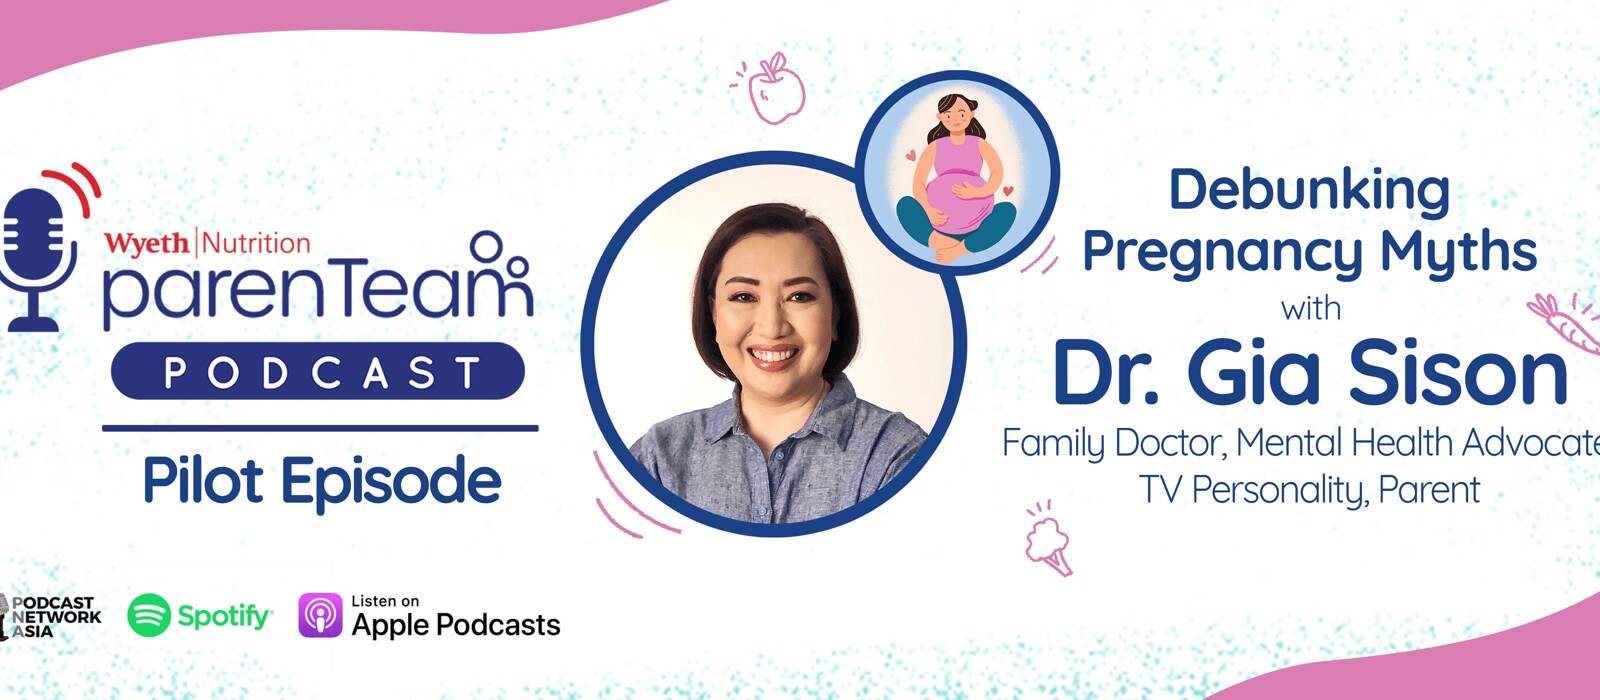 Episode 1, Debunking Pregnancy Myths with Dr. Gia Sison